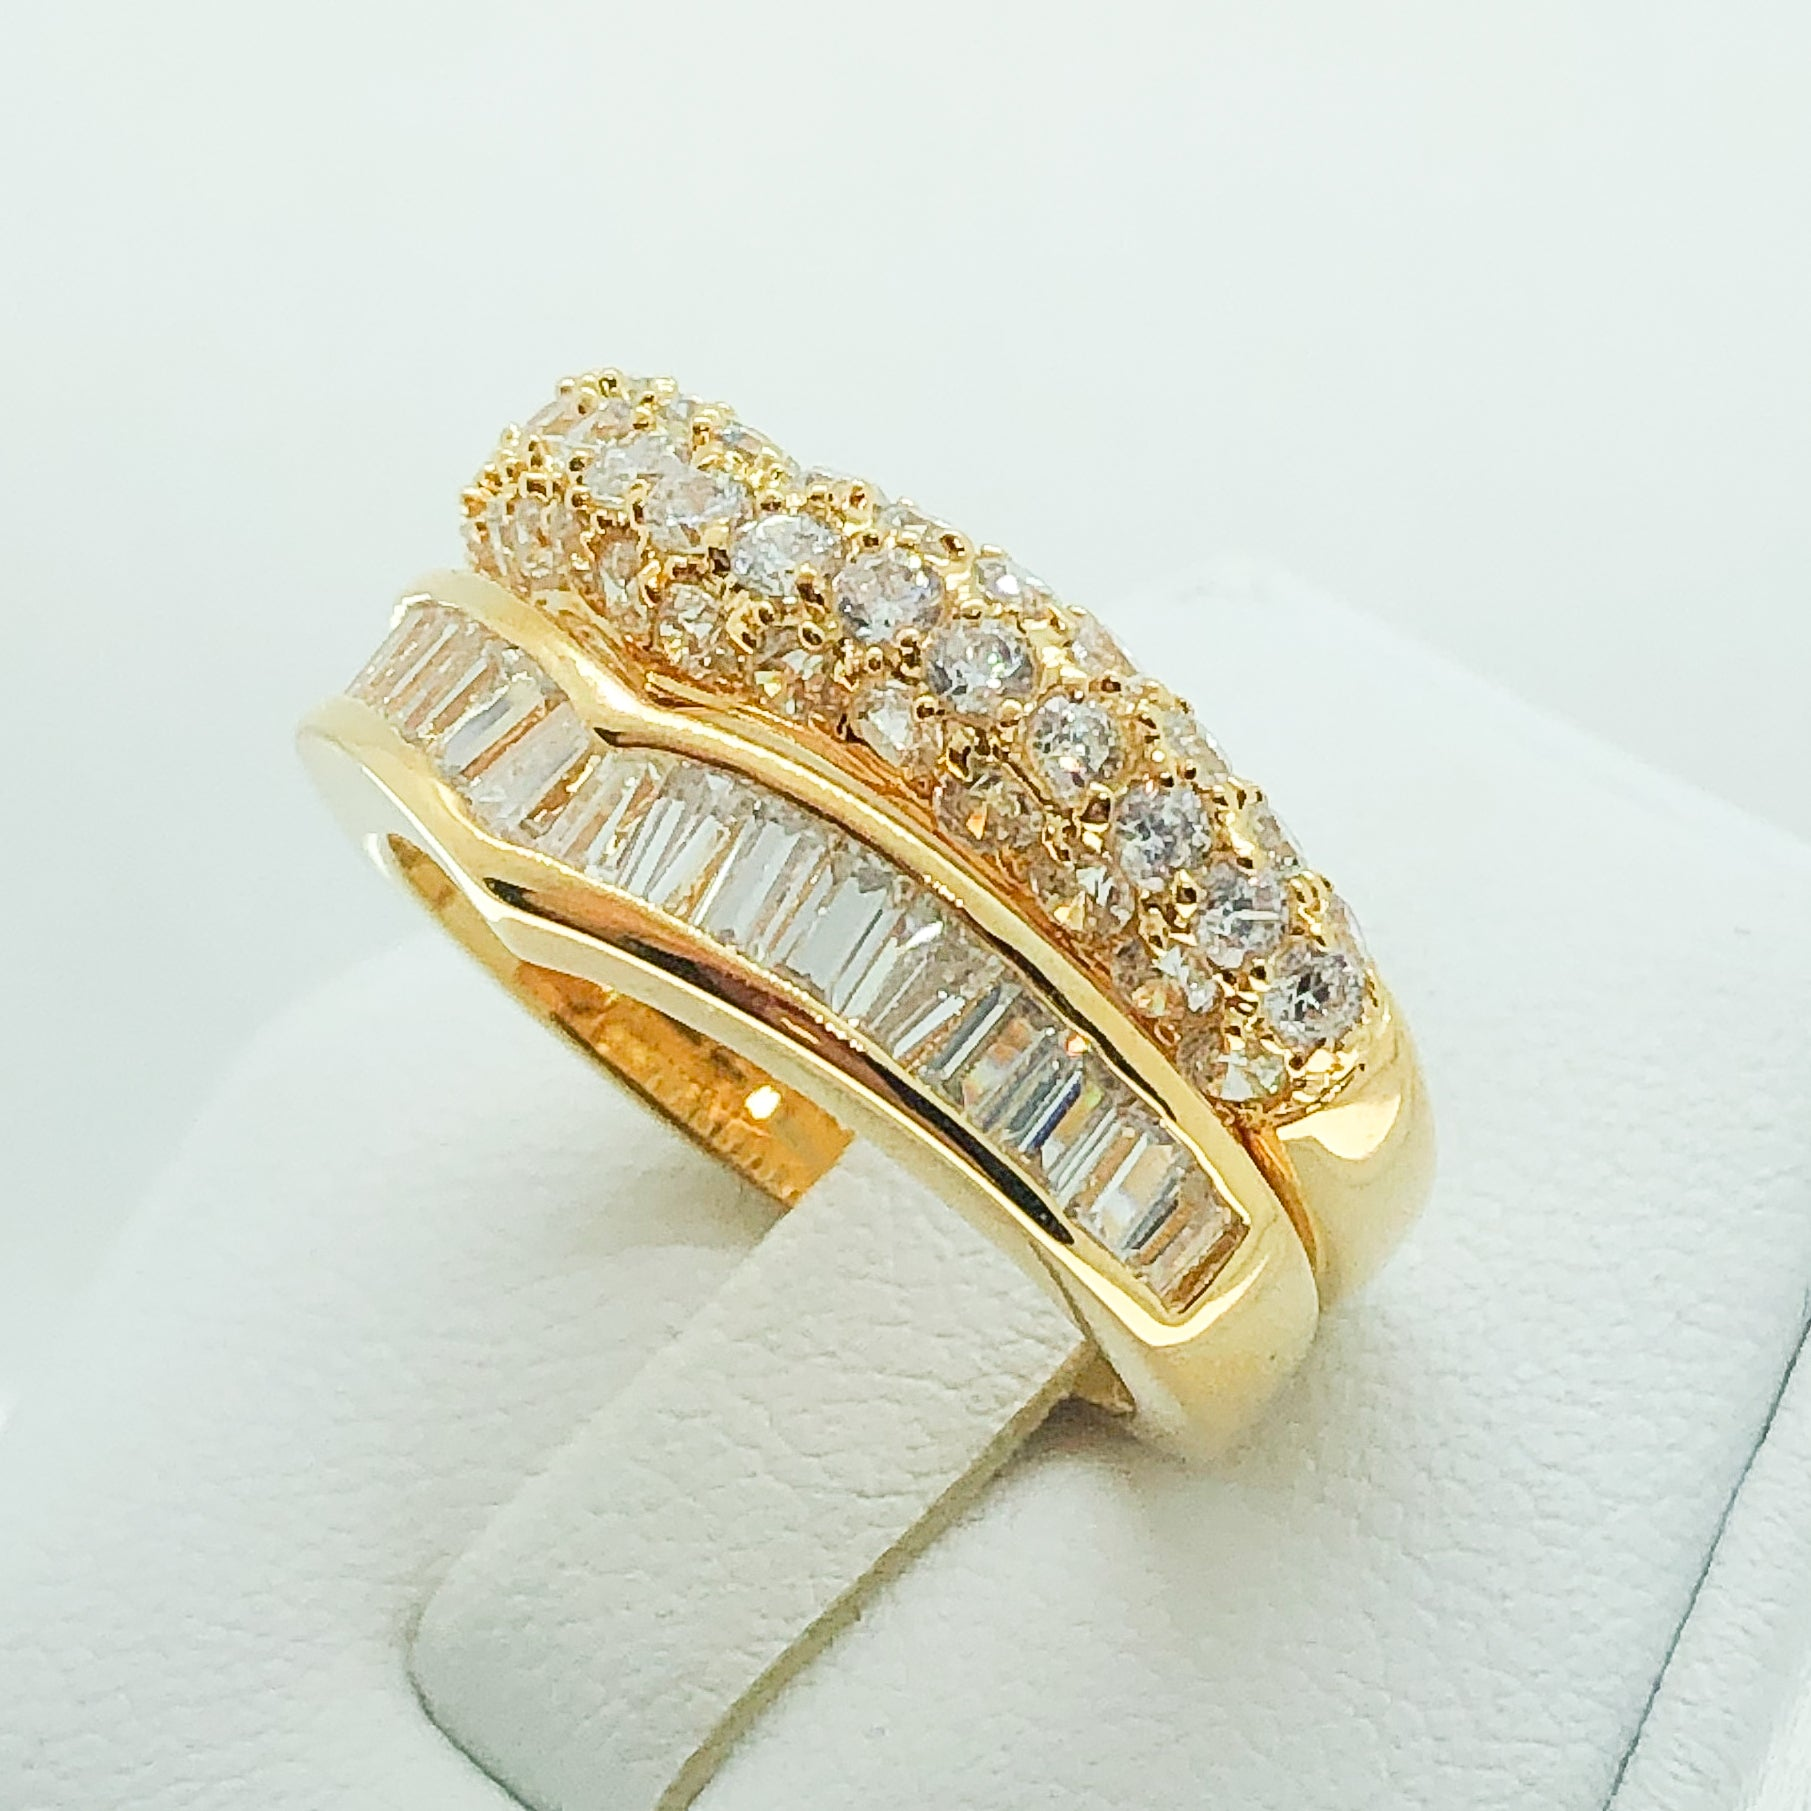 ID:R2890 Women Vintage Jewelry 18K Yellow Gold GF Burnished Engagement Wedding Diamonique Bridal Band Ring 2pcs/Set